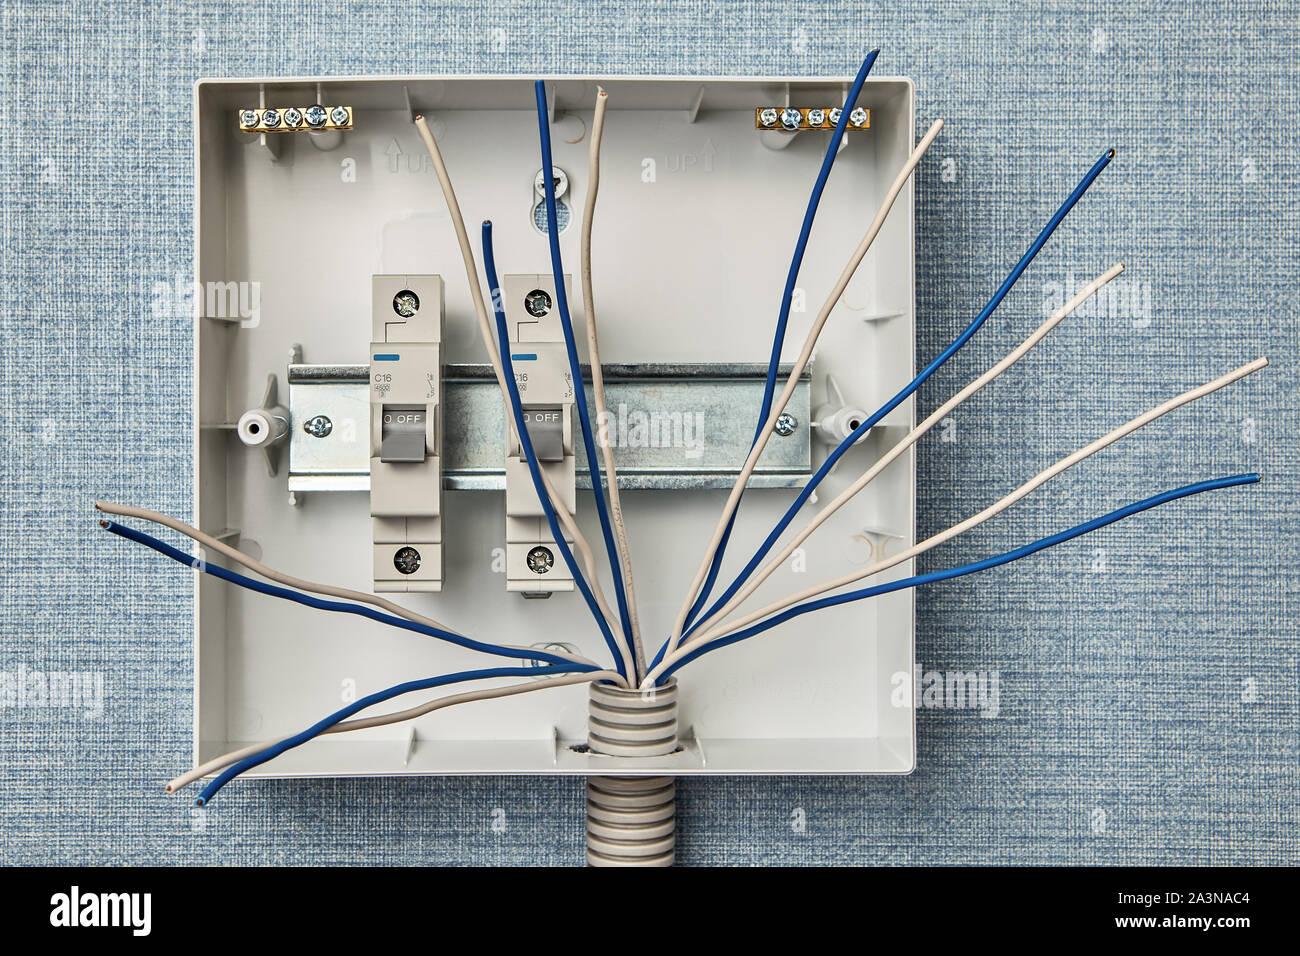 Home Electrical Wiring Switchboard Installation Installing A Fuseboard Or Circuit Breakers In A Household Electrical System Electricity Control Pan Stock Photo 329310132 Alamy